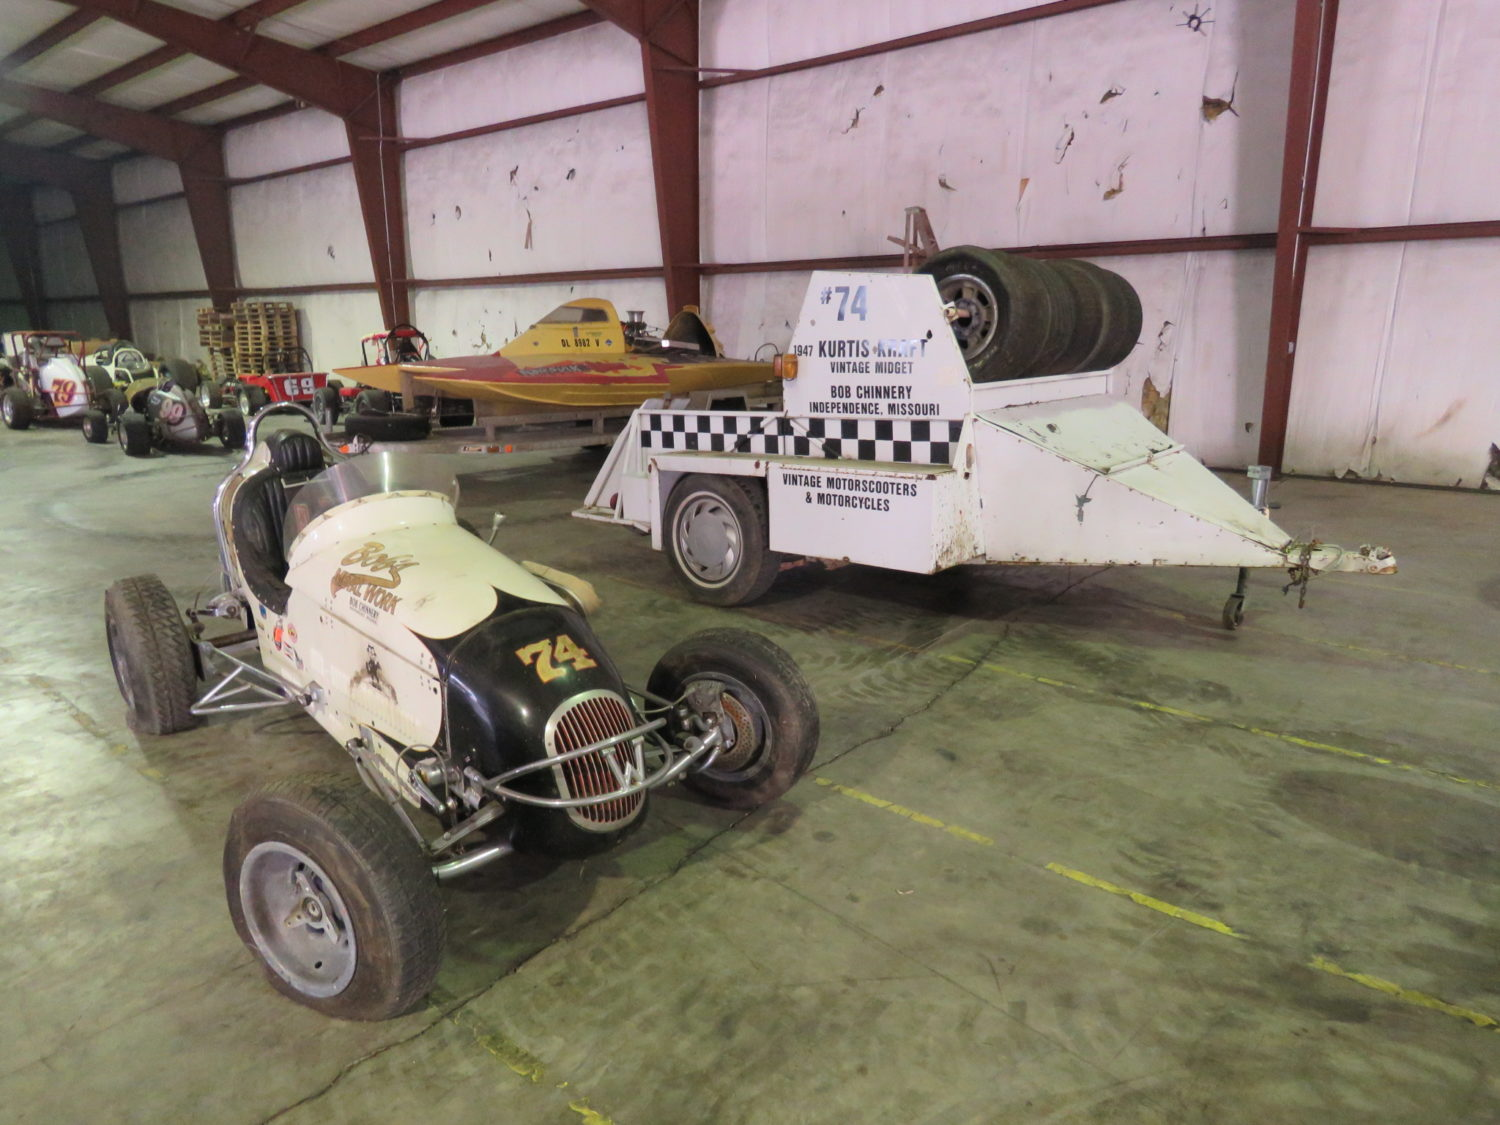 Amazing Vintage Motorcycles, Race Cars, Collector Cars & Parts! The JAB Collection - image 2